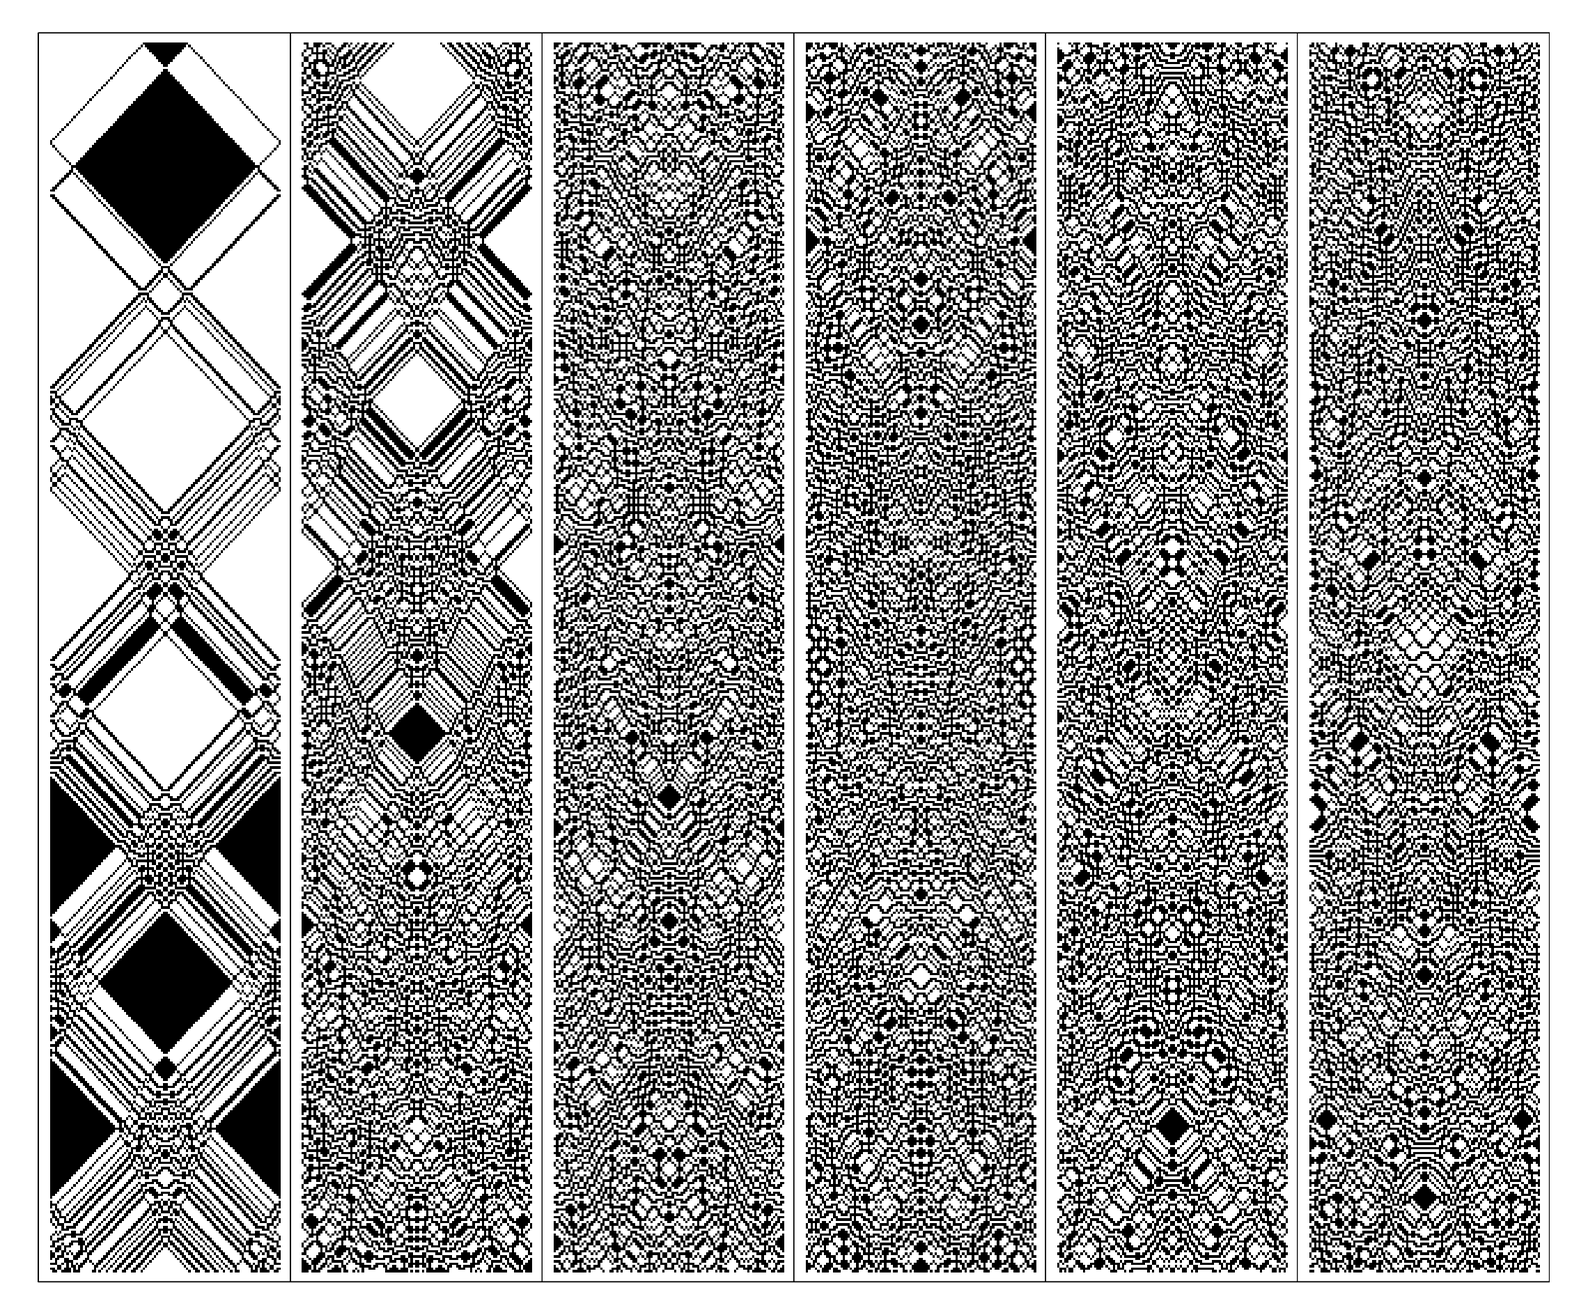 Reversible cellular automaton that exhibits seemingly irreversible behavior